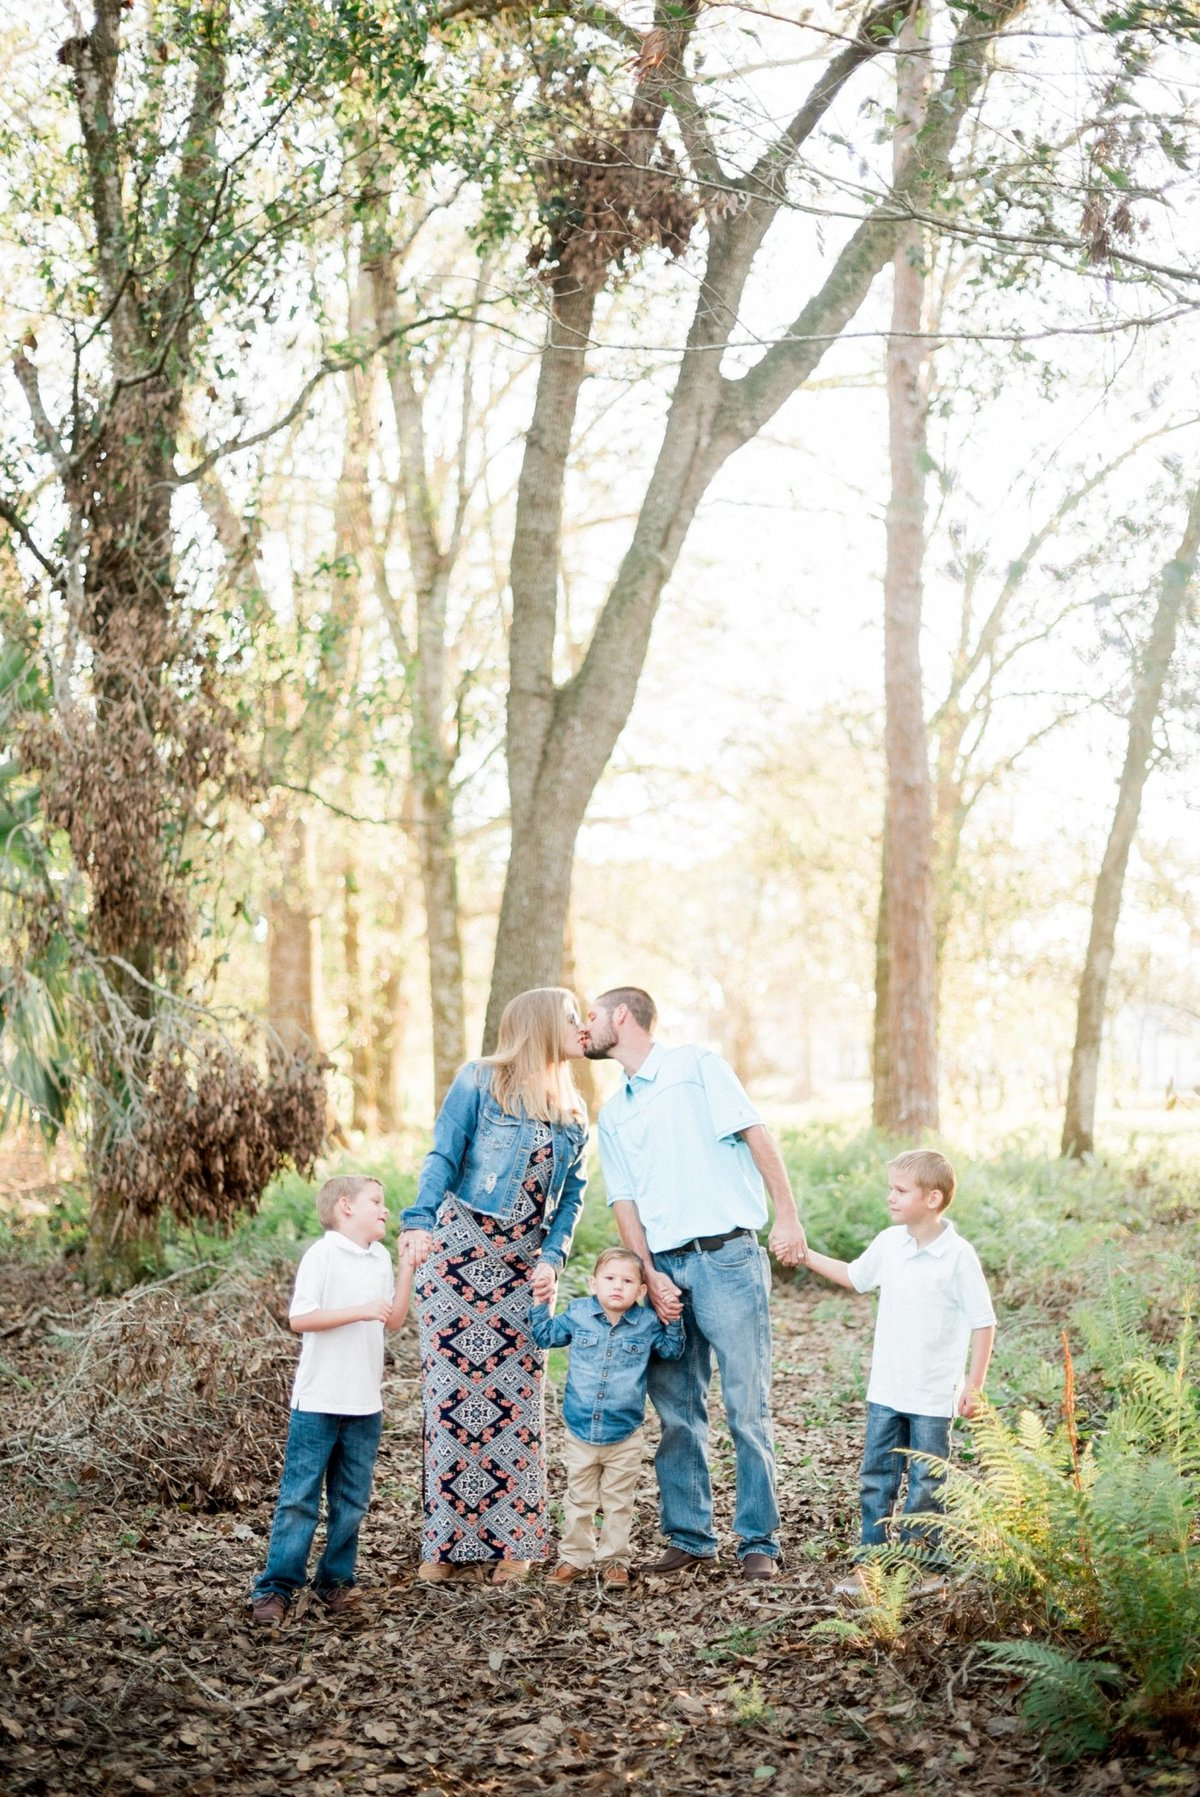 tiffany danielle photography - Vero beach family photographer - stuart family photographer - okeechobee family photographer (73)